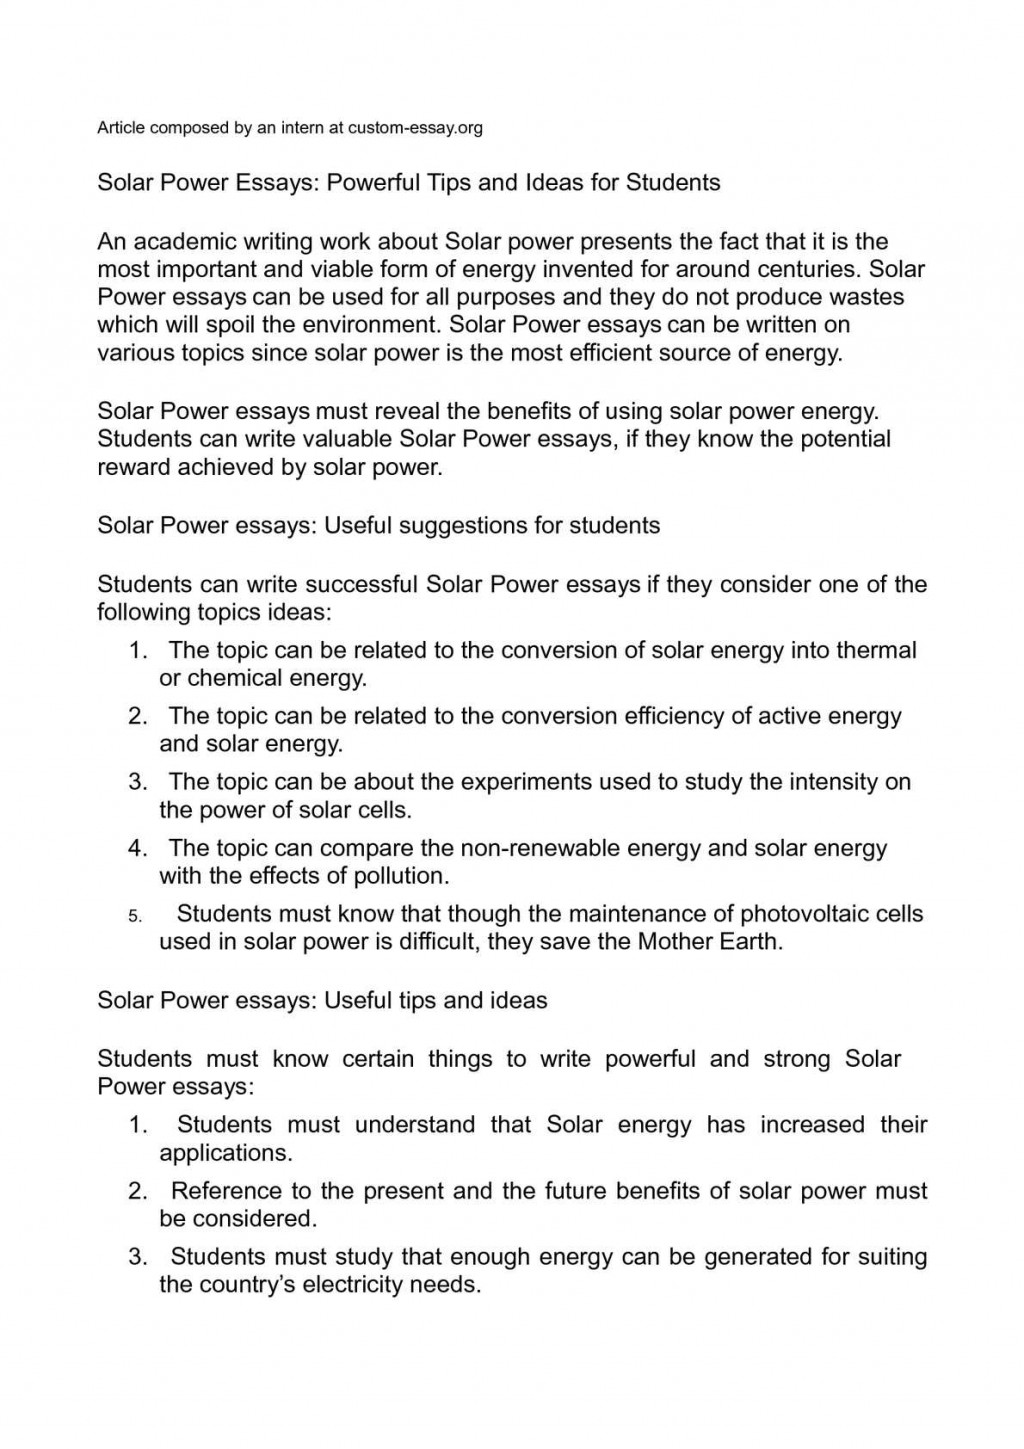 005 P1 Power Essay Shocking Abuse Of Introduction Nuclear Black Topics Large